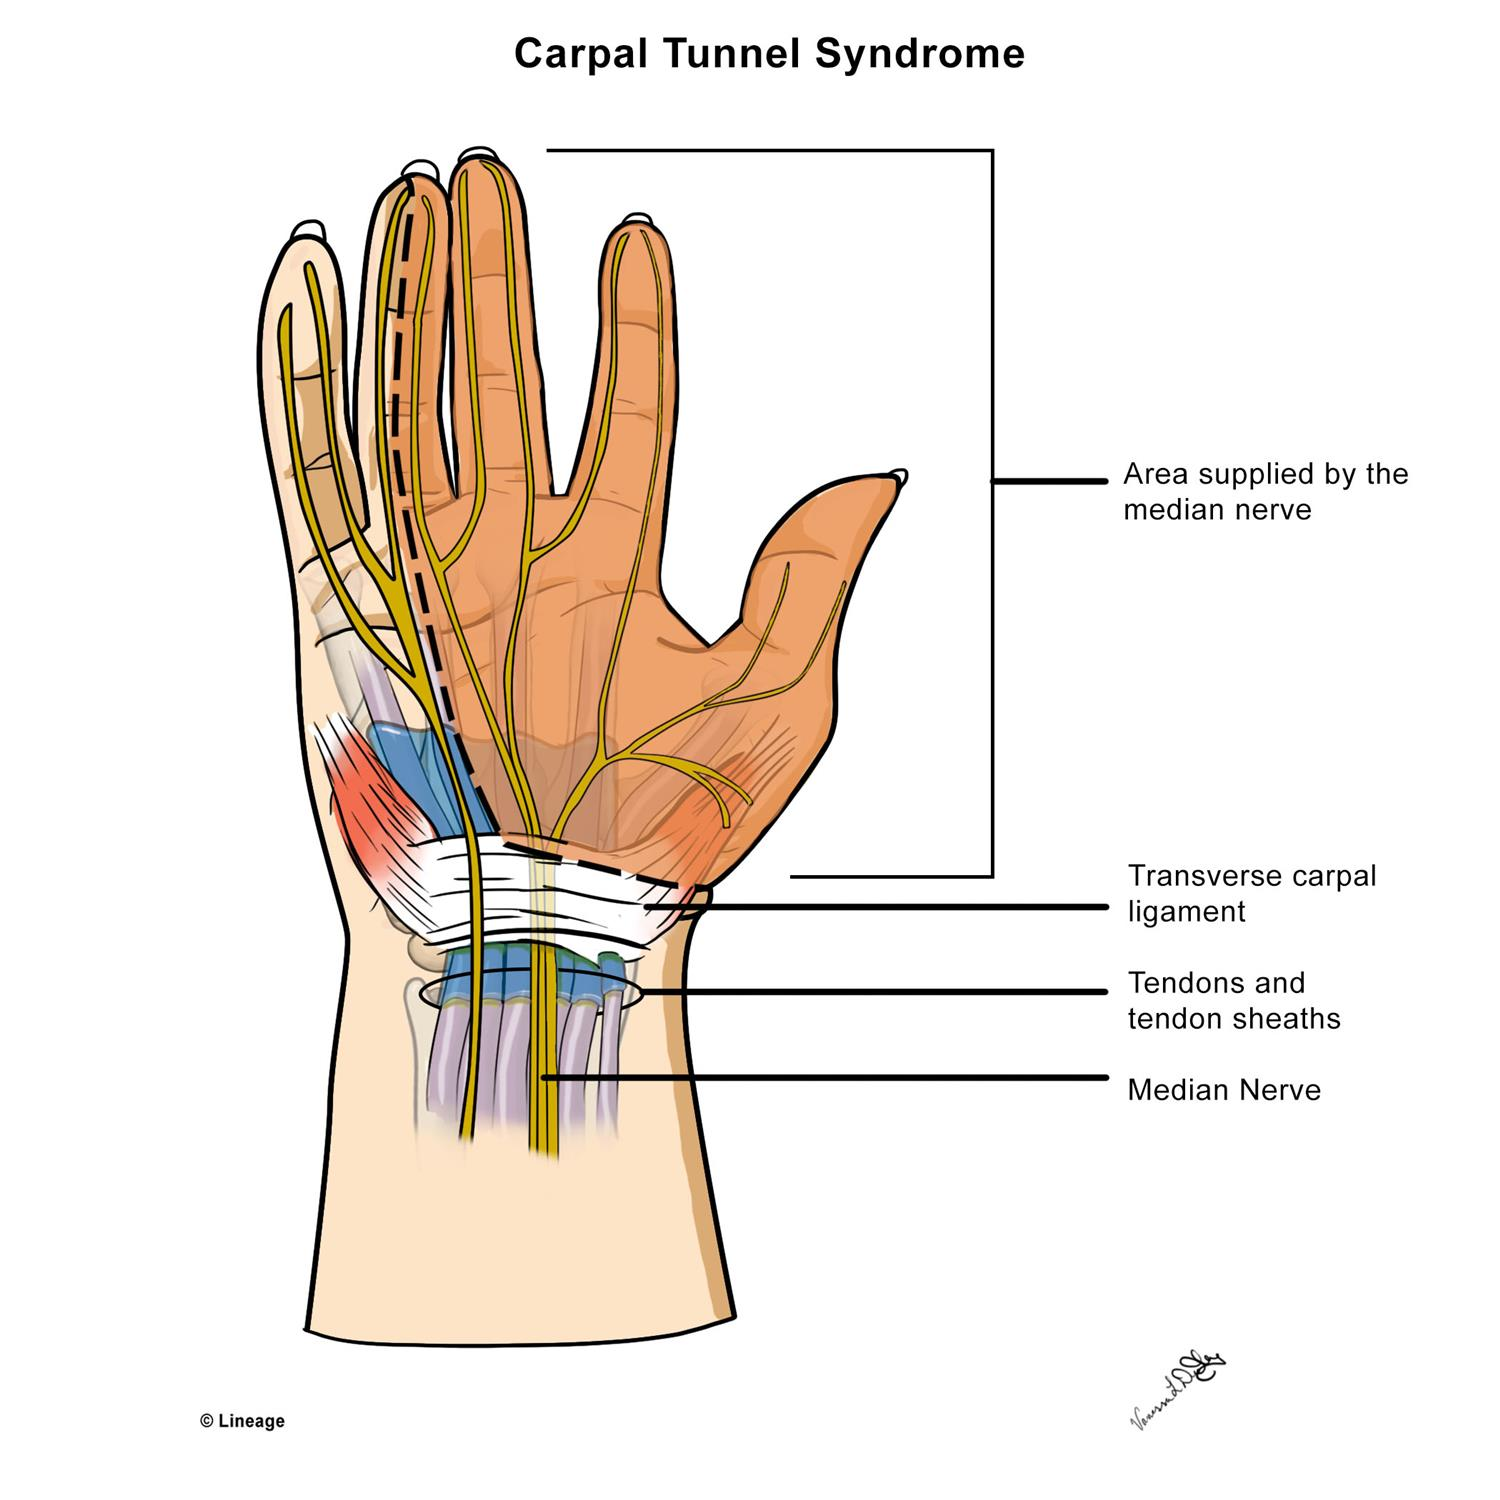 Carpal Tunnel Syndrome - MSK - Medbullets Step 1